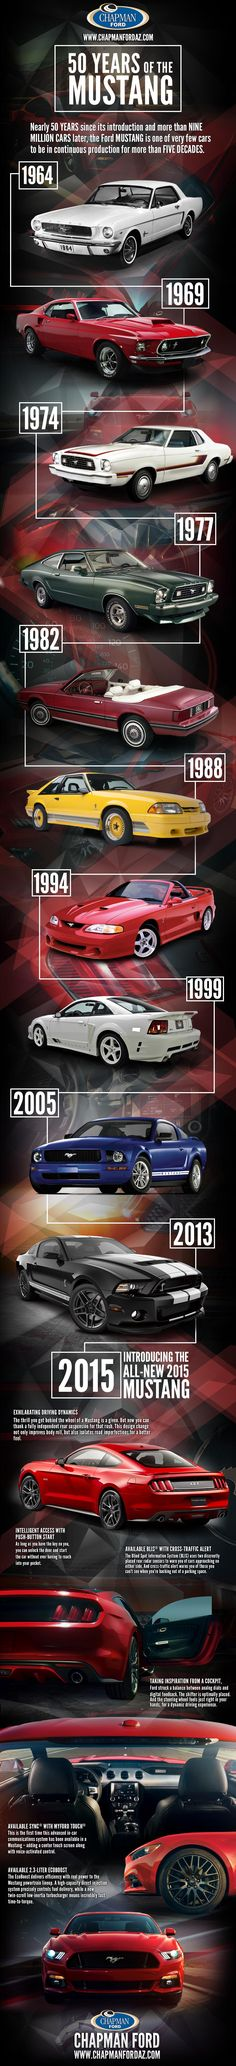 50 Years of the Ford Mustang in one beautiful poster by Leah Cook of Chapman Automotive Group.